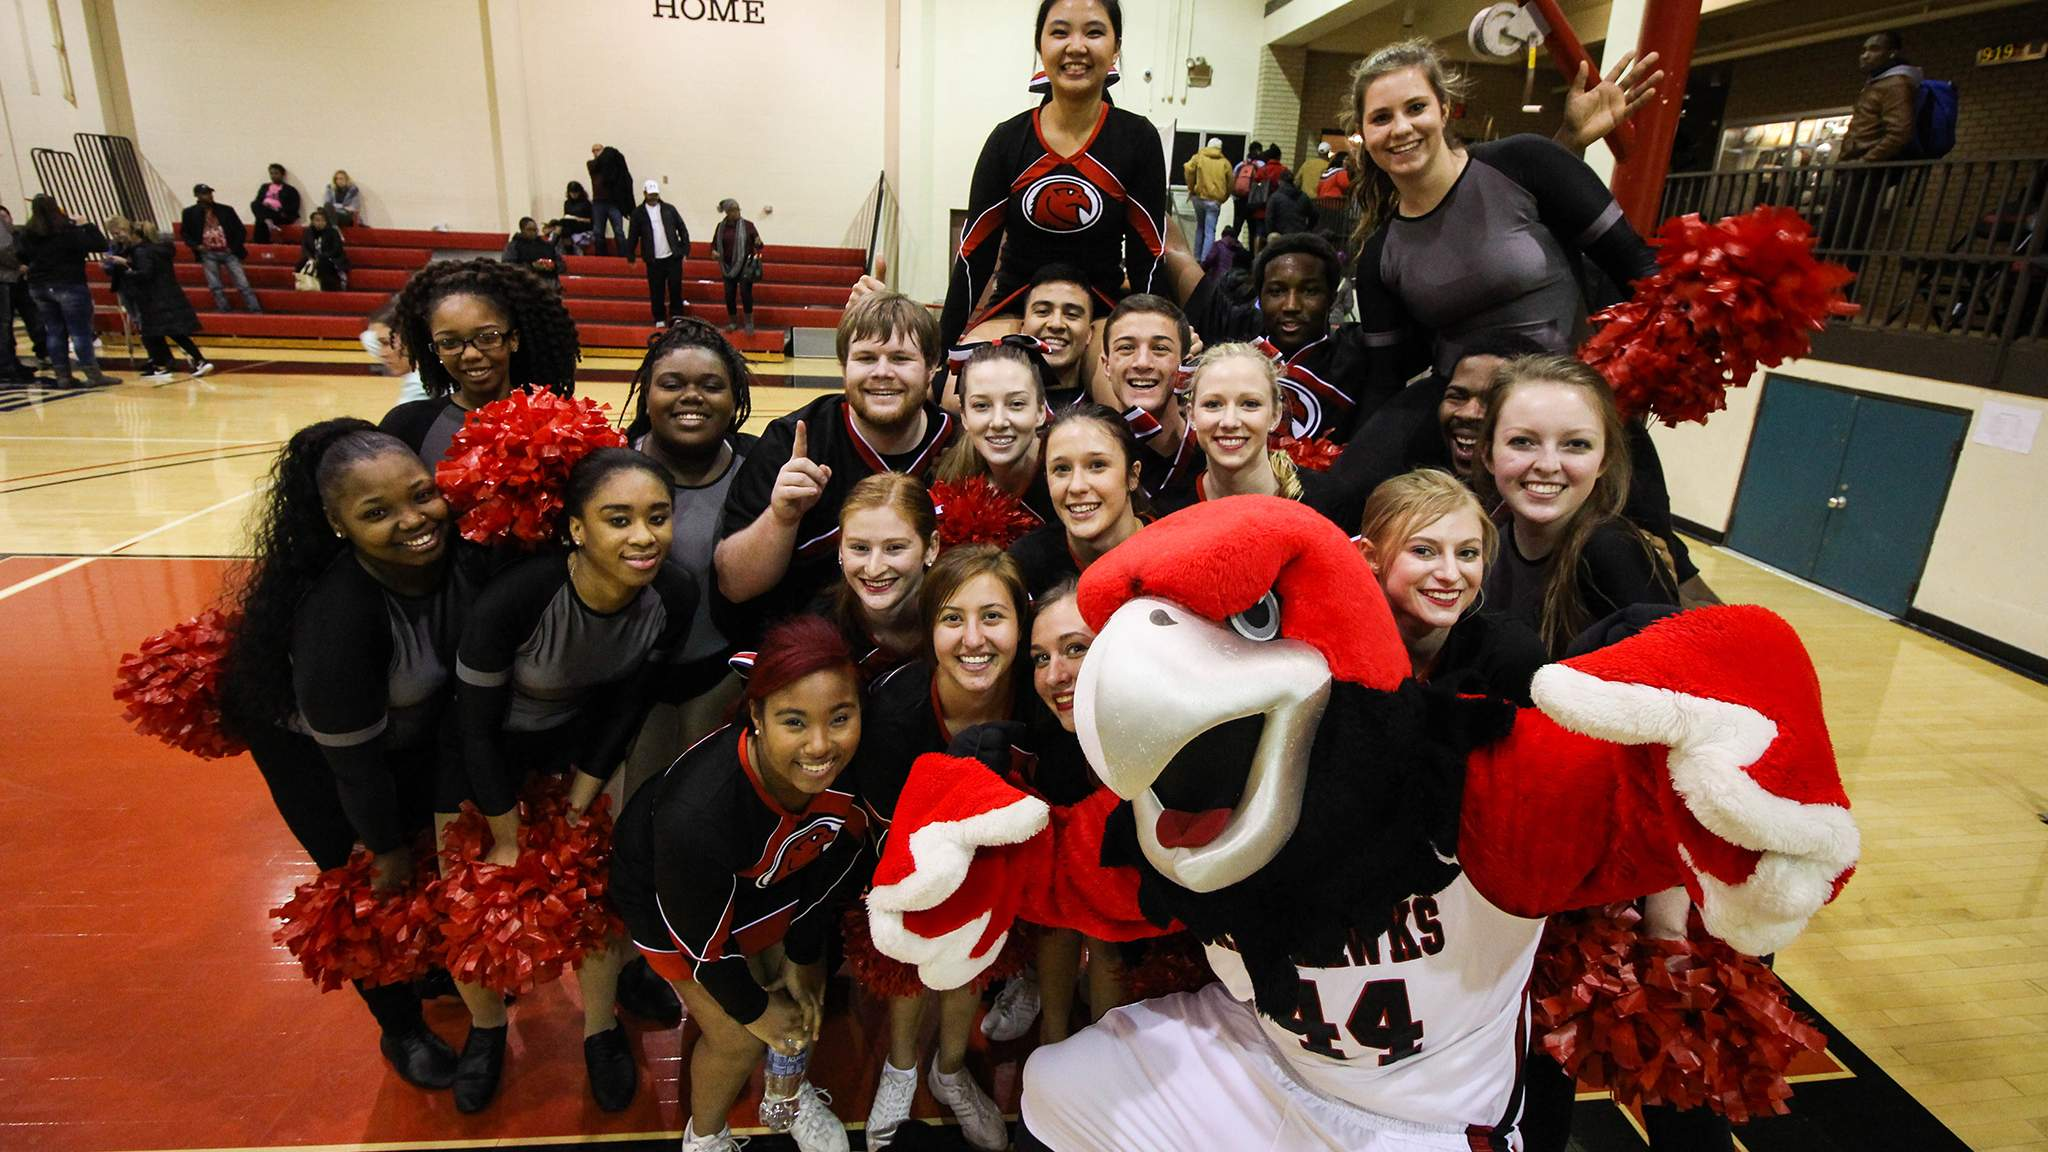 Cheer Club and Rocky at Basketball Game